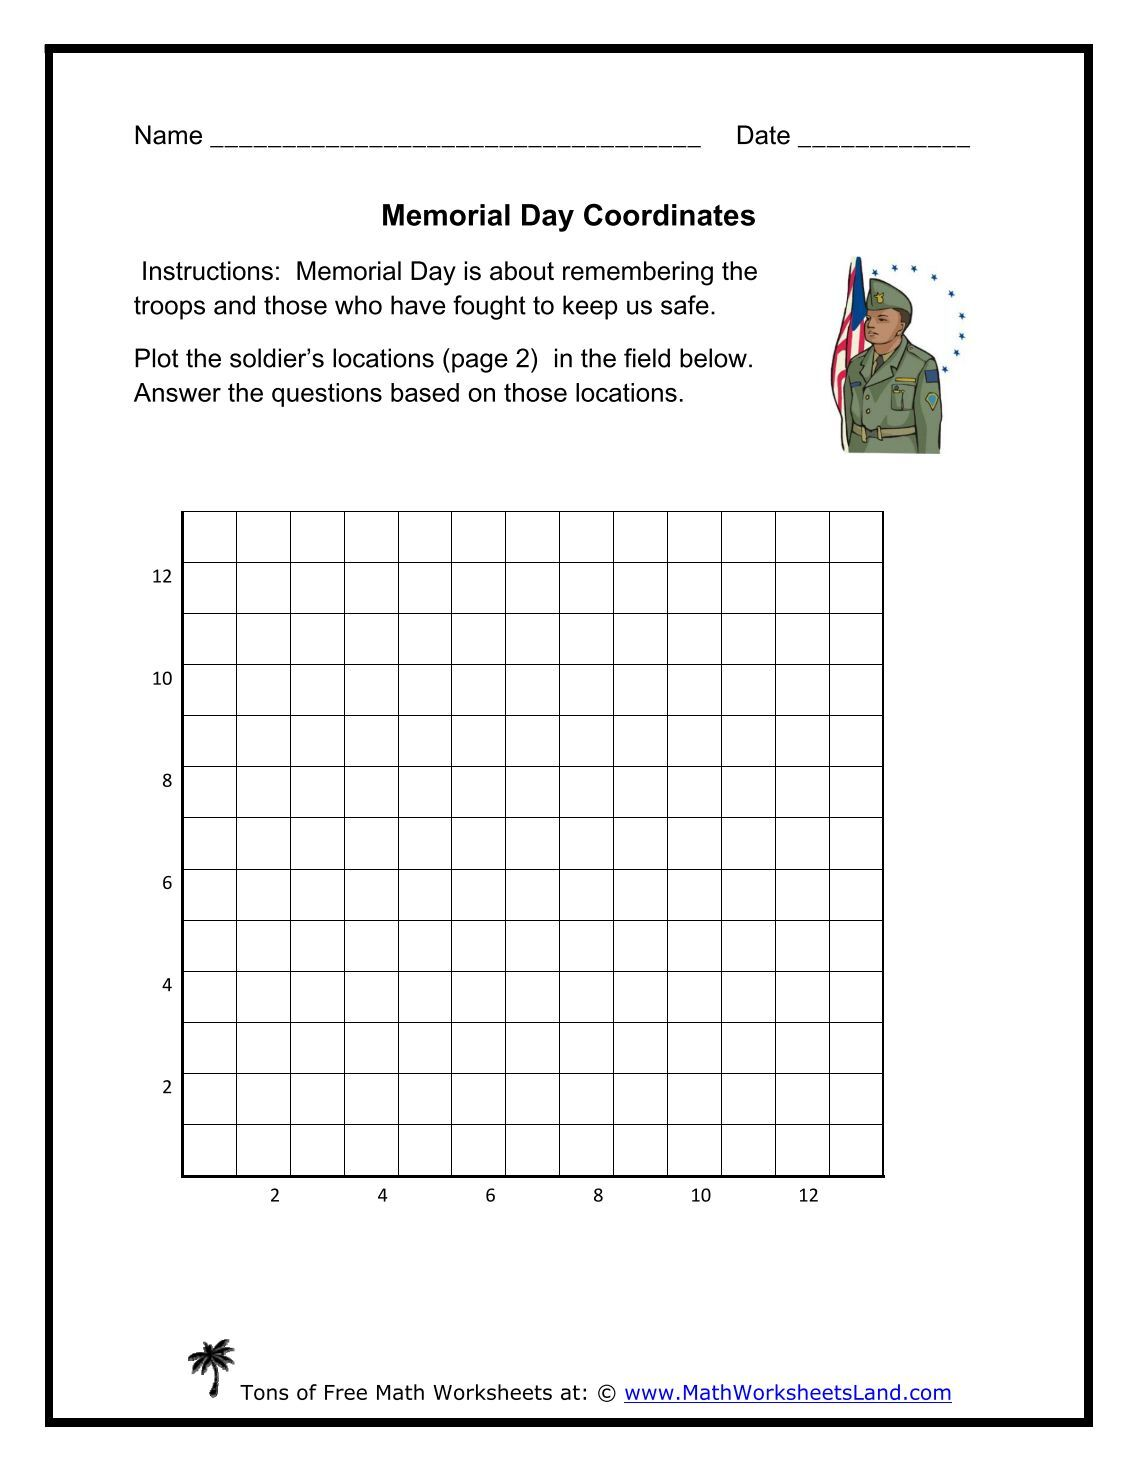 worksheet. Math Worksheets Land. Grass Fedjp Worksheet Study Site